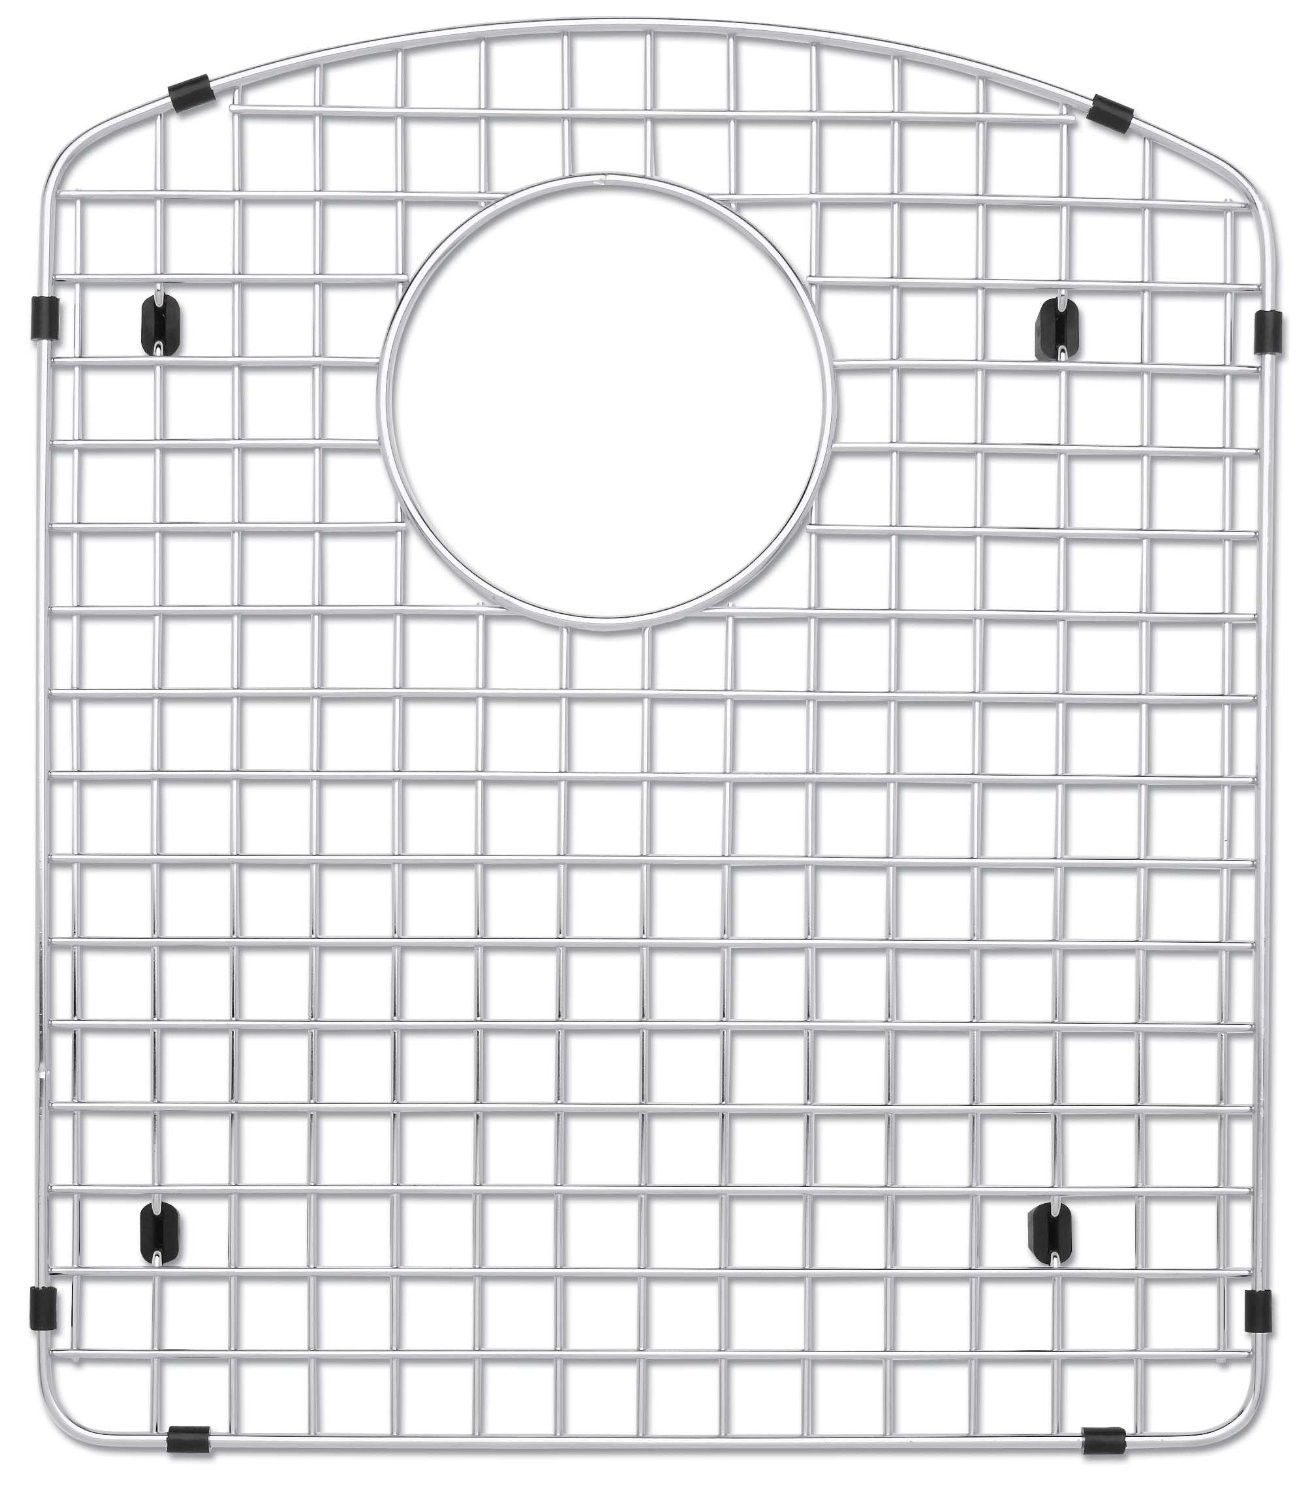 Blanco 220998 Stainless Steel Kitchen Sink Grid Fits Diamond 1 3/4 Large Bowl